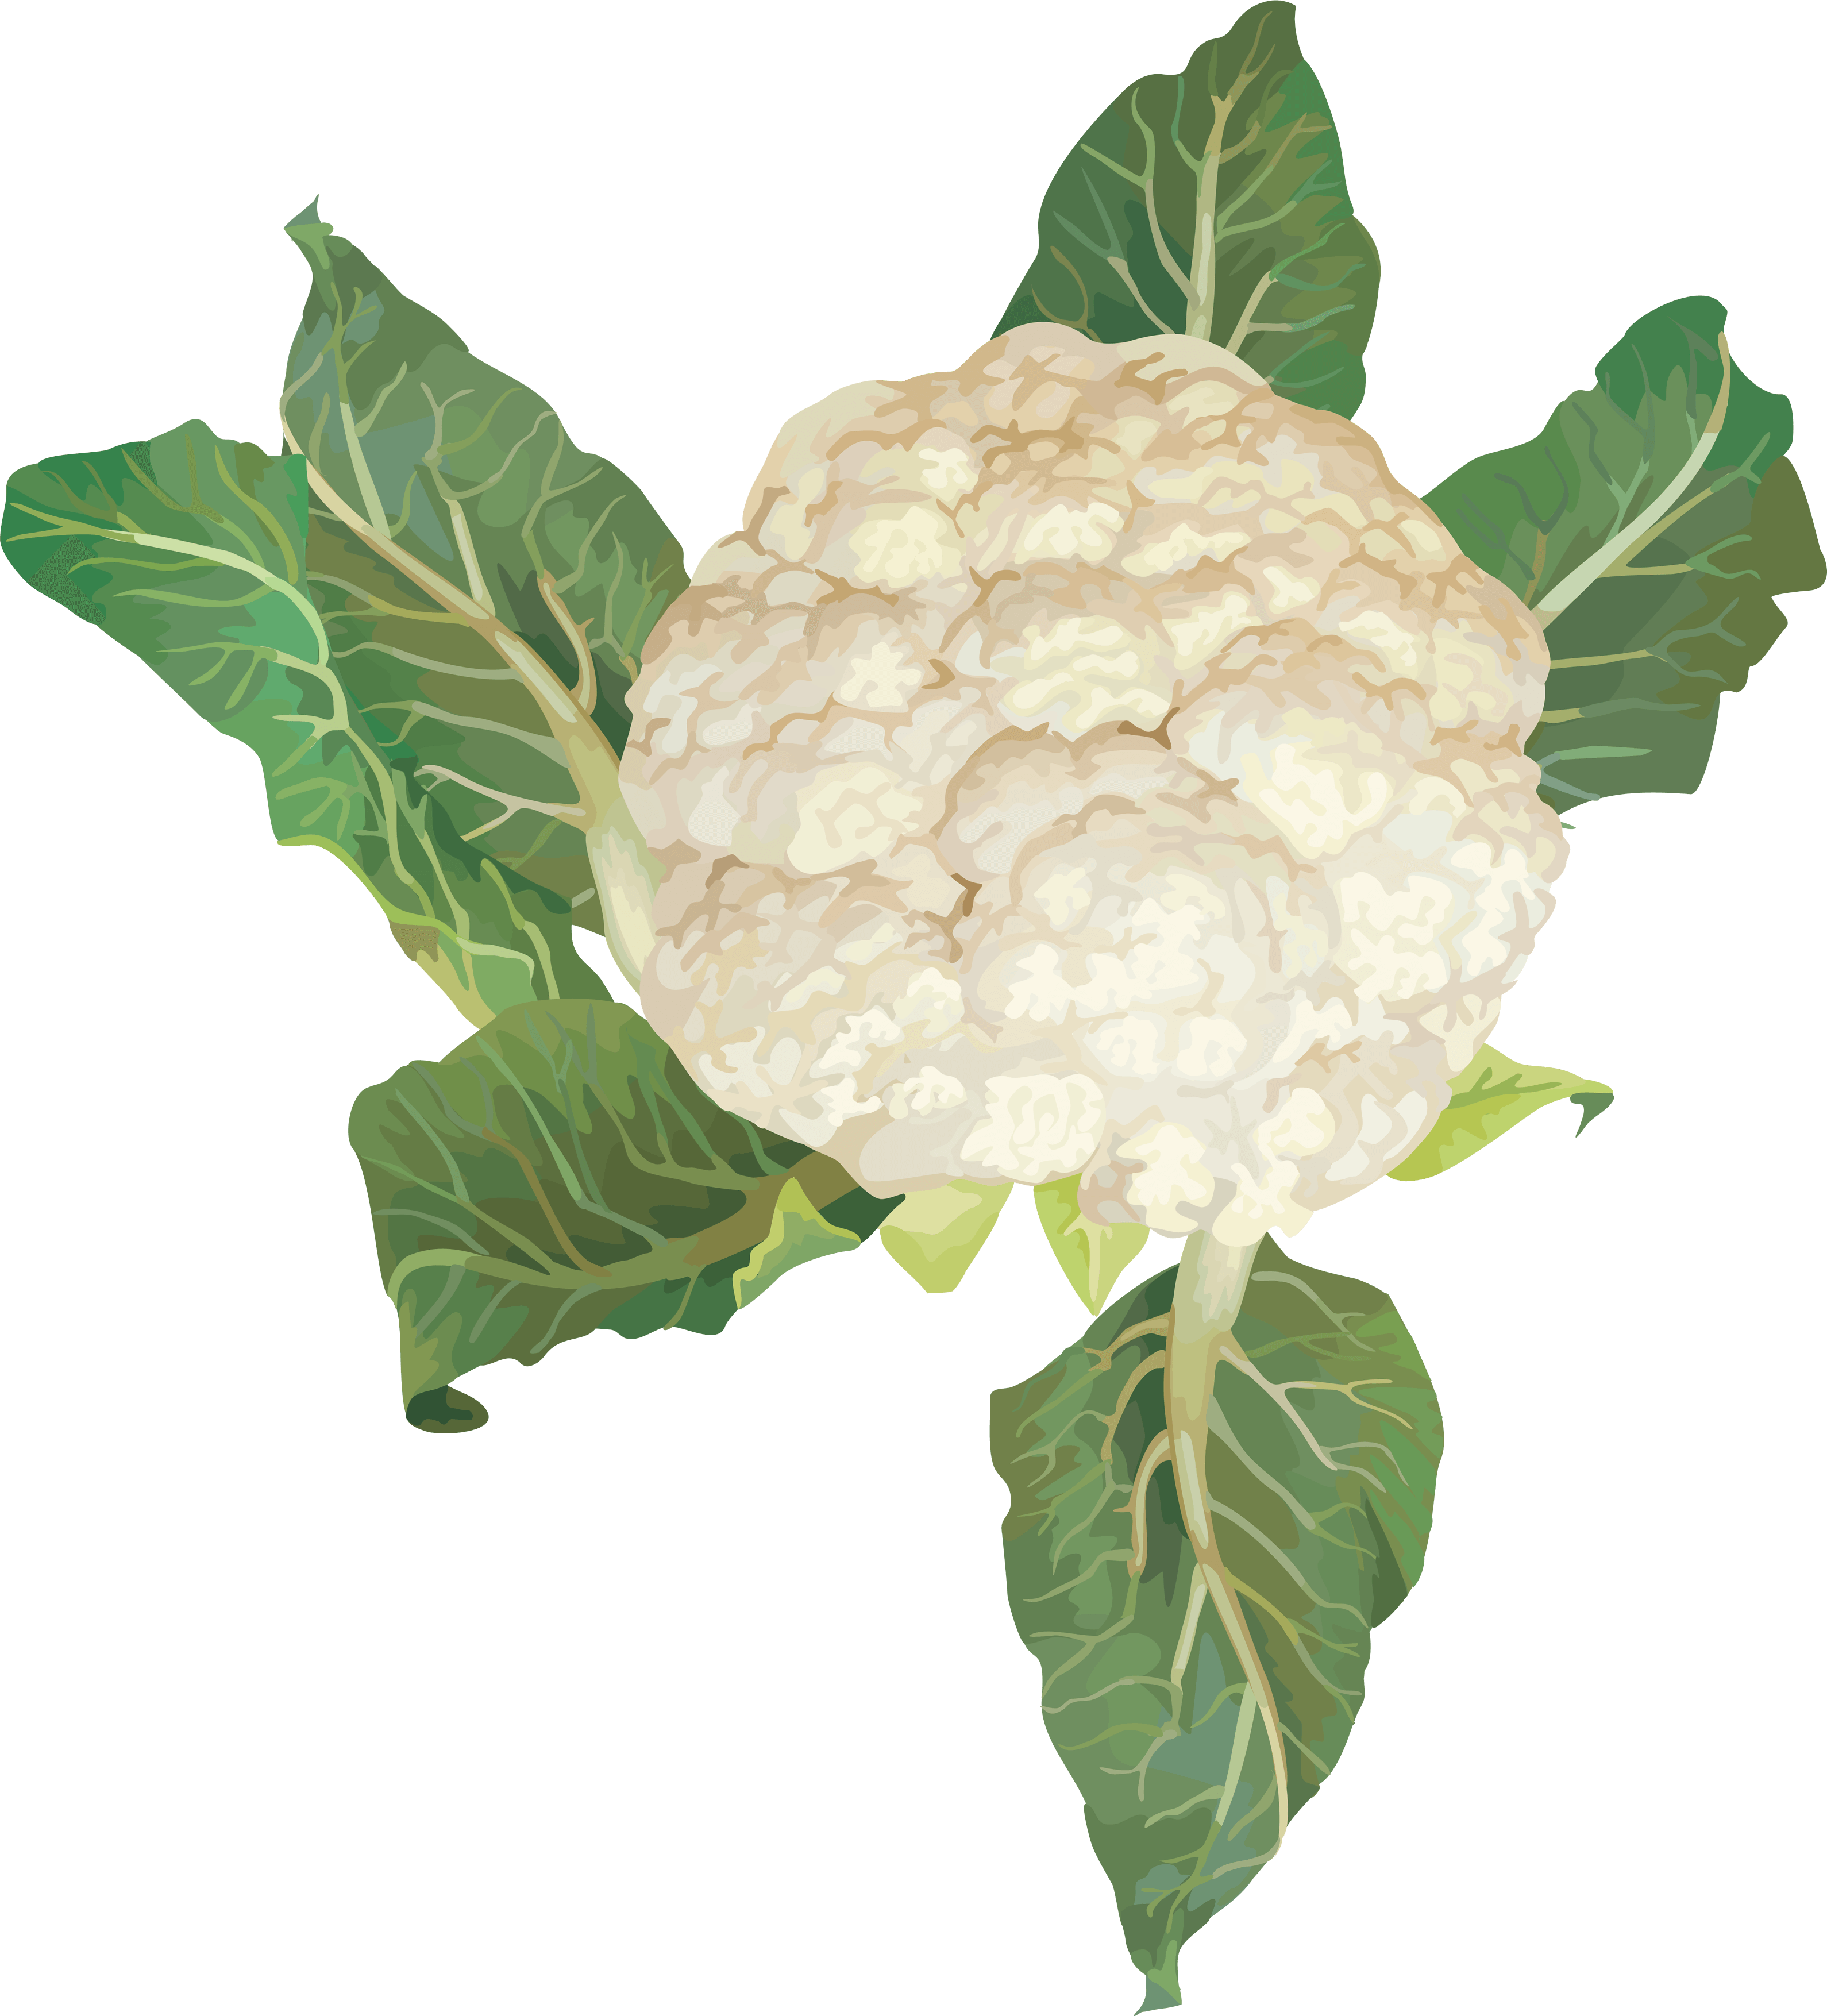 Cauliflower Png Image PNG Image